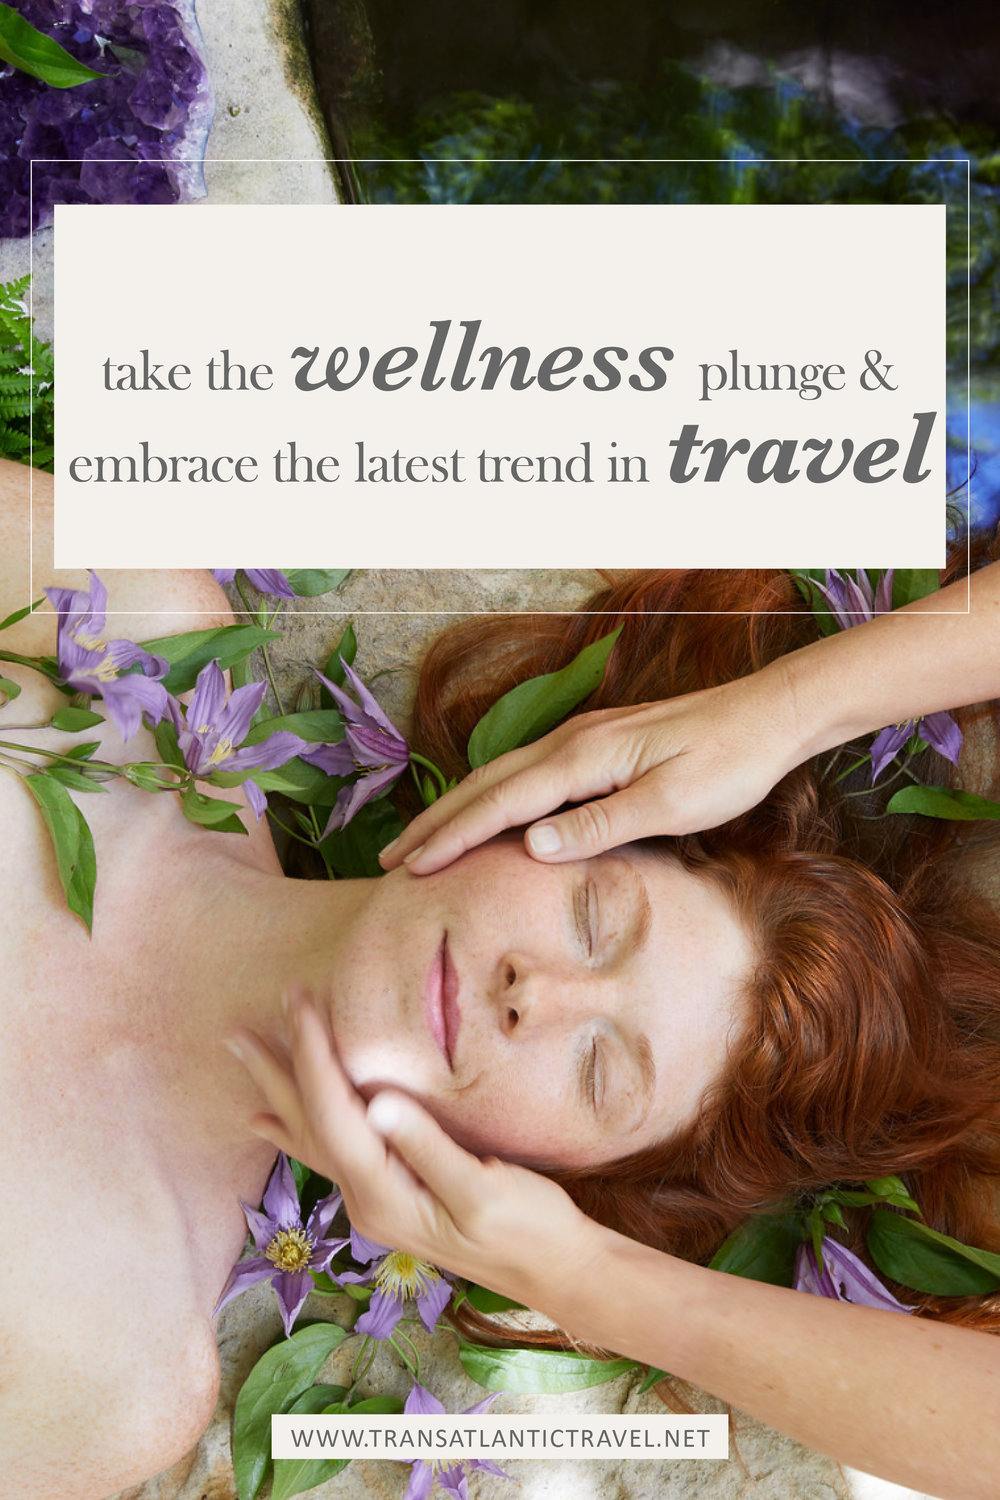 Are you ready to take the wellness plunge? From luxury spa treatments and meditation to equine therapy and culinary delights, we invite you to embrace the latest travel trend of 2019.